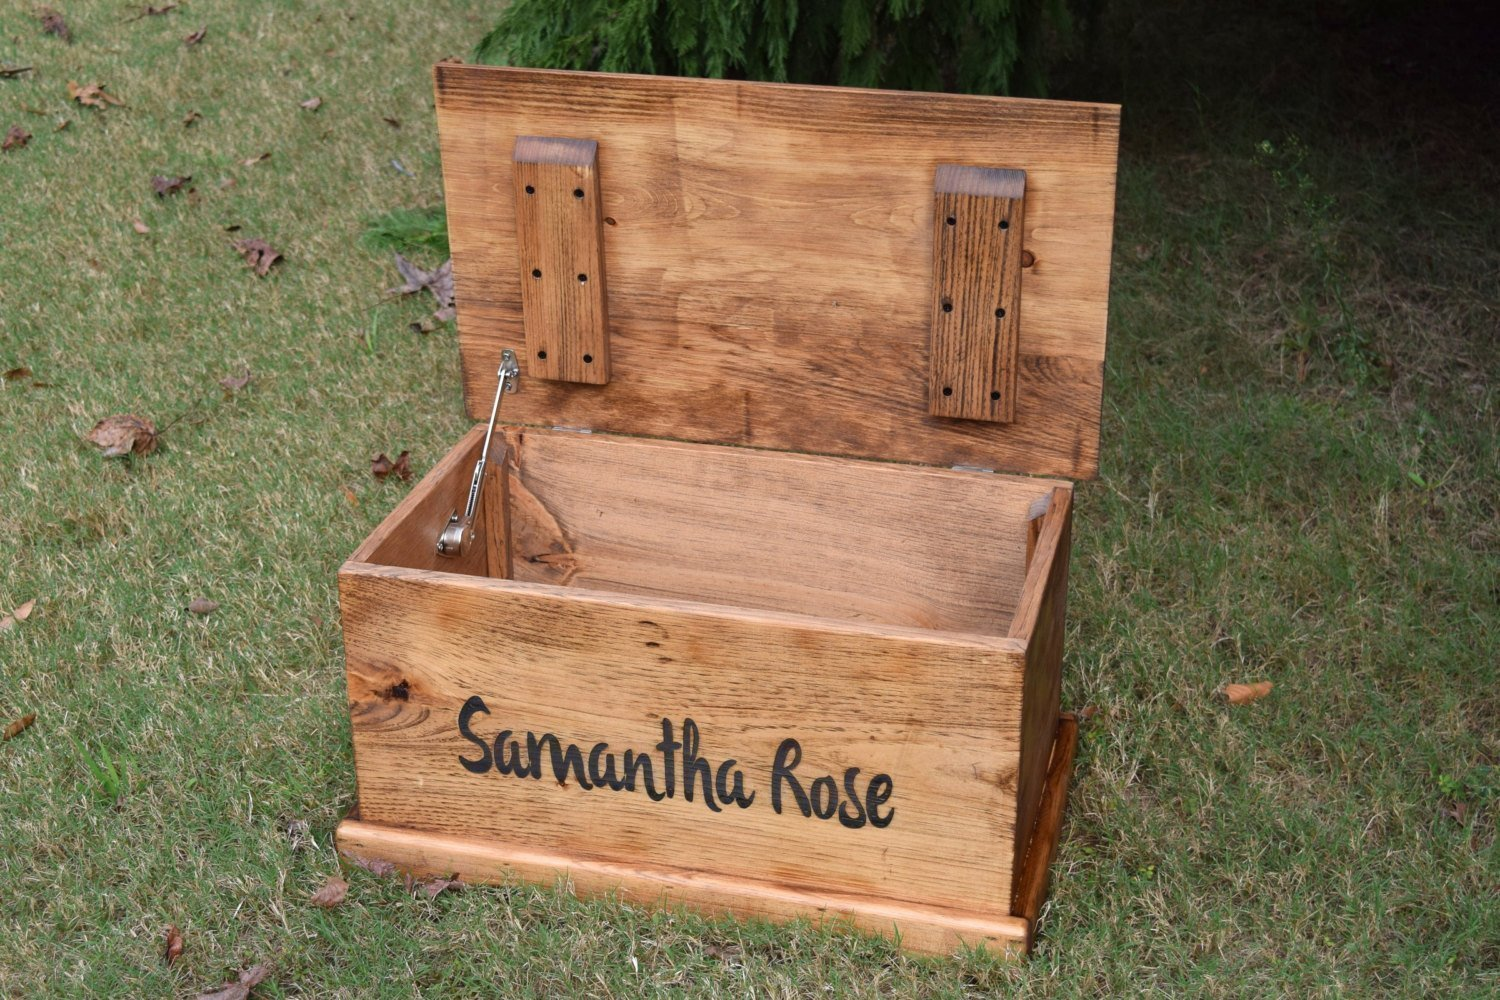 Laser Engraved Personalized Kids Toy Box - Engraved Toy Box - Personalized Toy Box - Children's Toy Box - Kids Memory Box - Gift for Kids - Wood Toy Box - Treasure Chest by Country Barn Babe (Image #4)